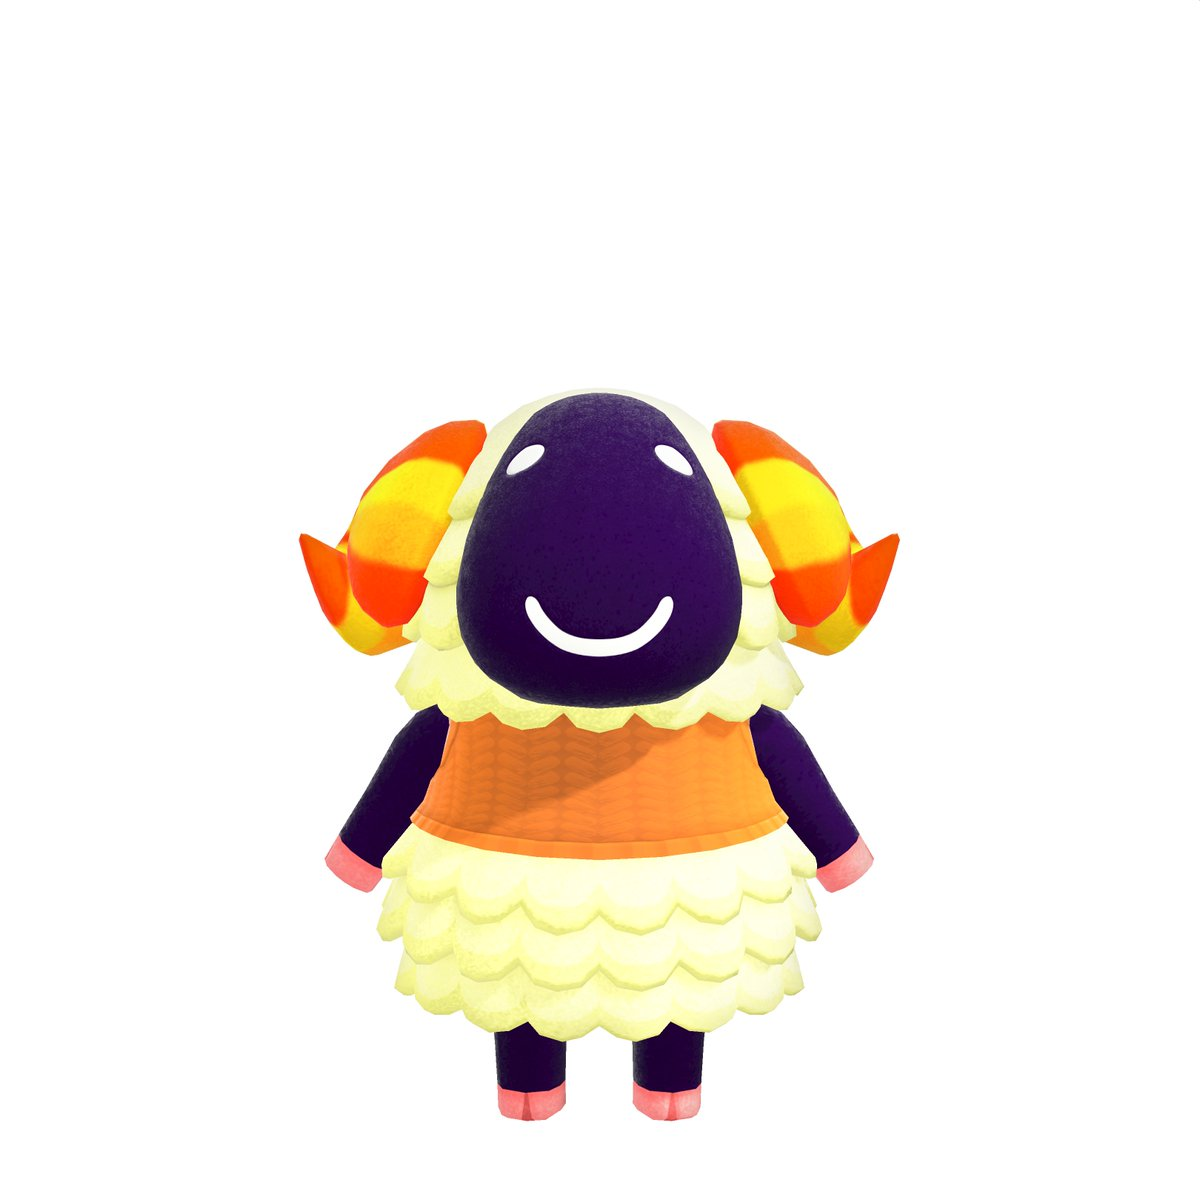 Animal Crossing World On Twitter Name A Better Sheep In Animal Crossing New Horizons You Can T I Ll Be Waiting